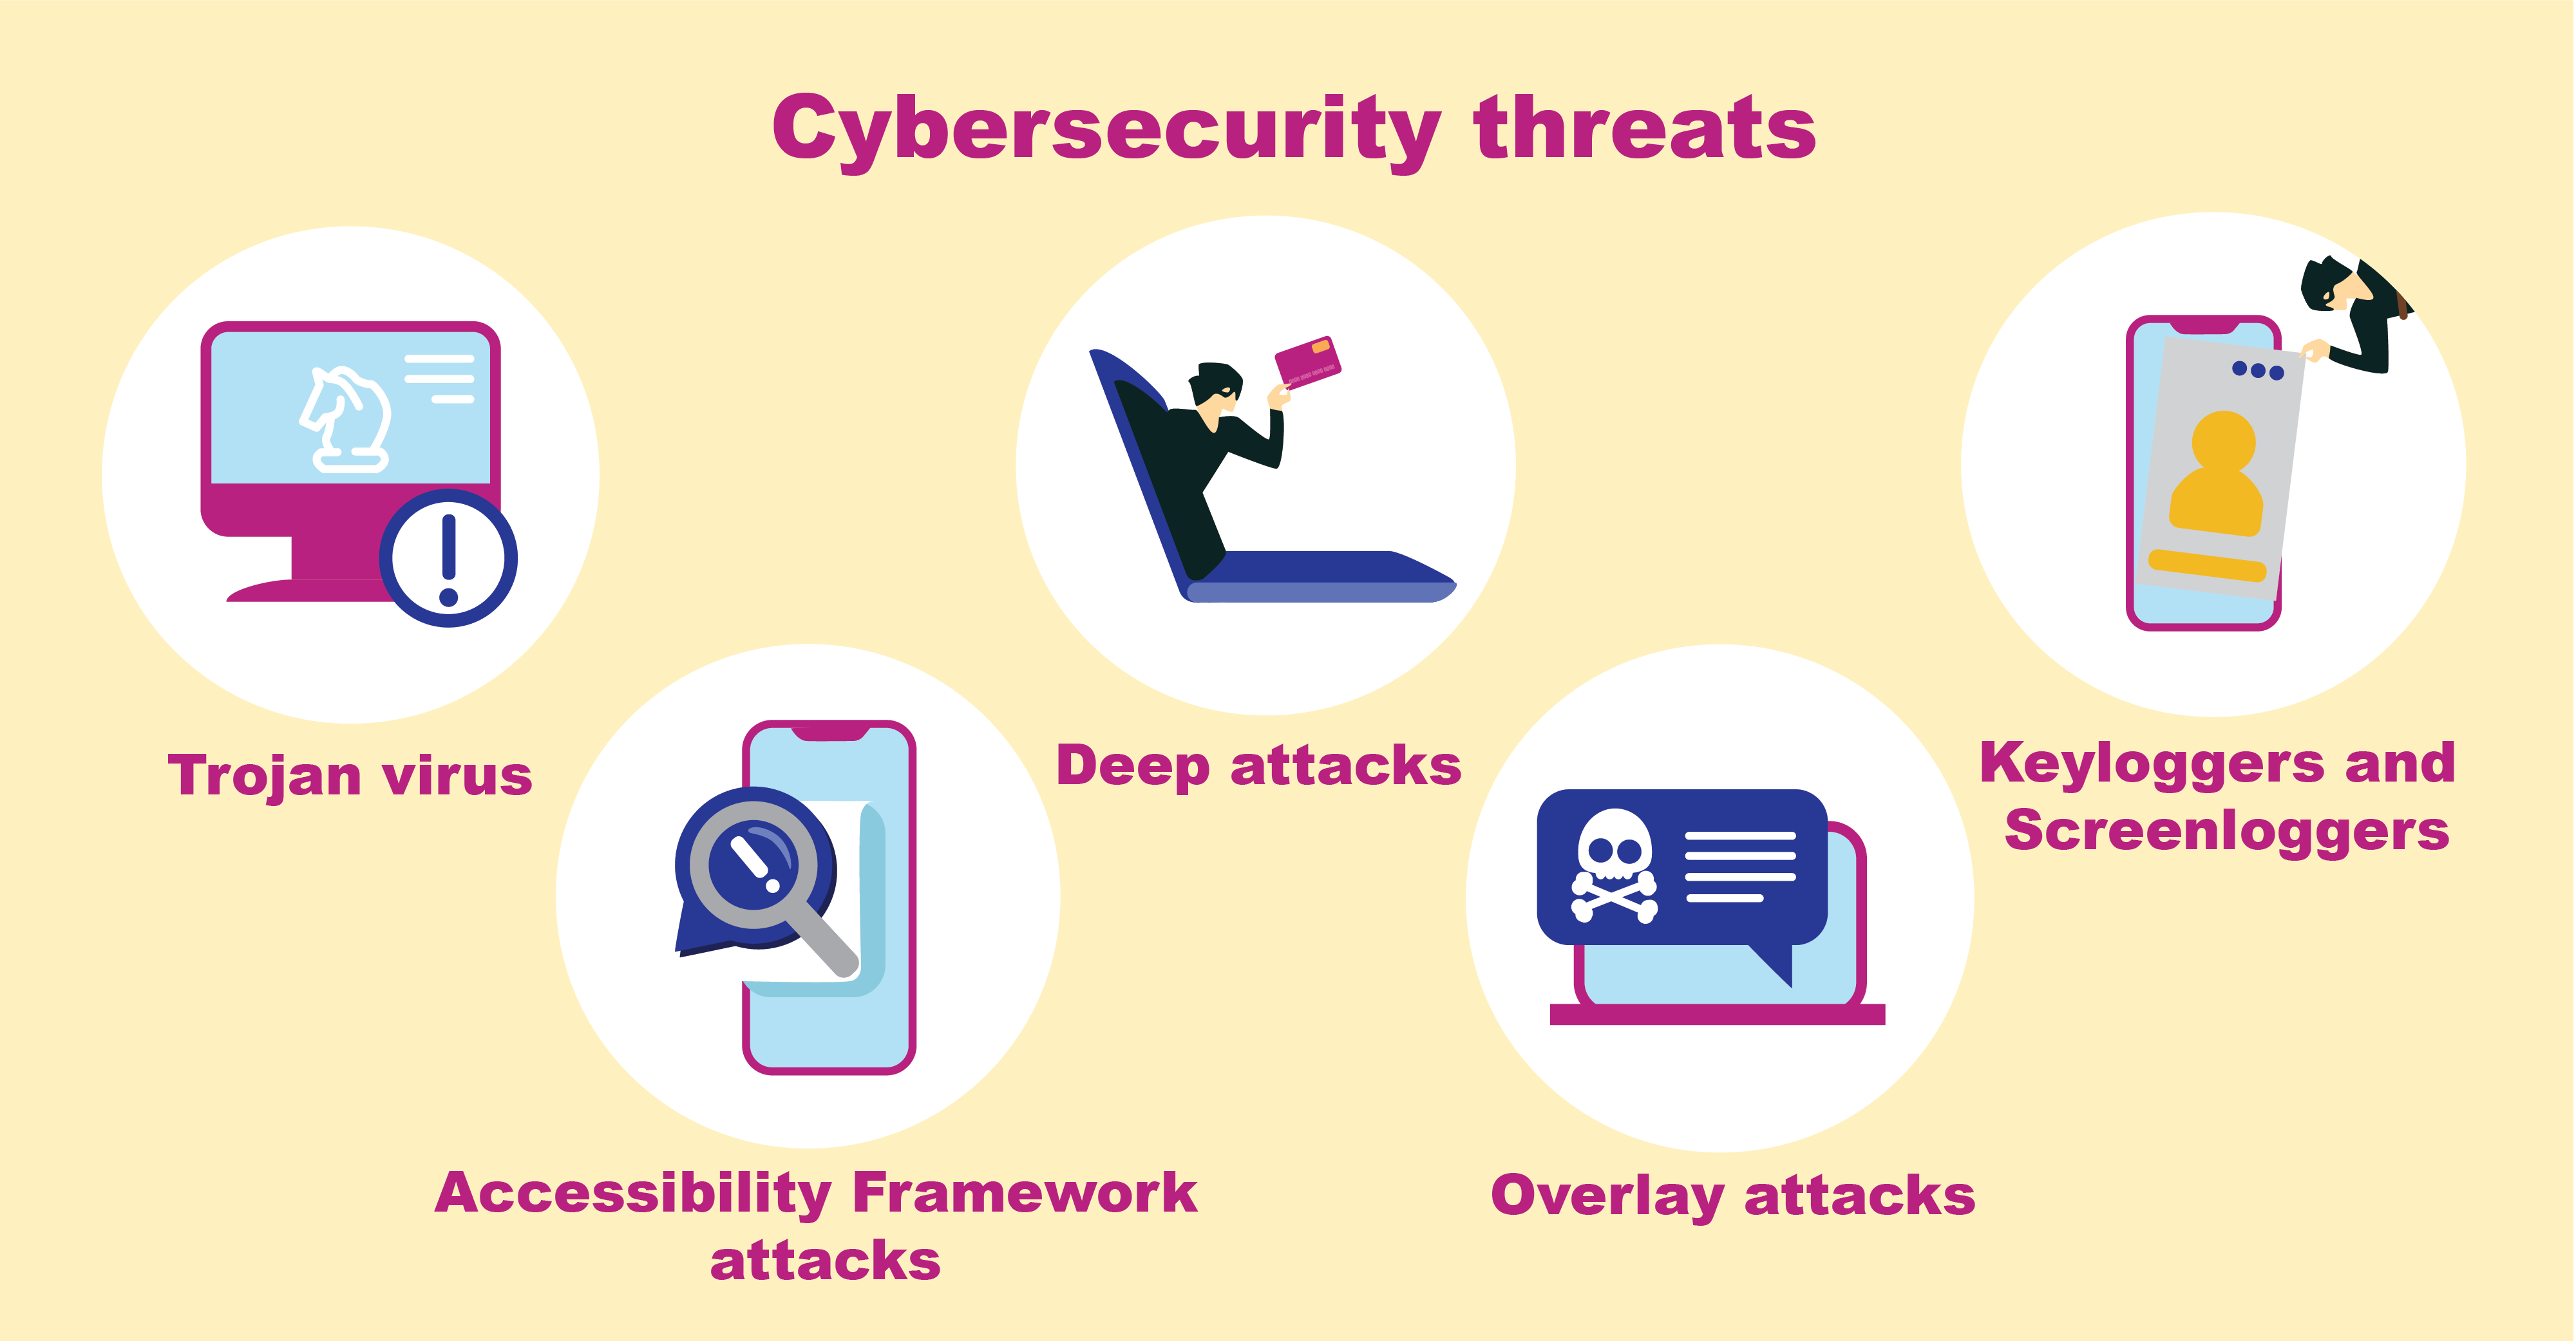 Cyber security threats on mobile banking